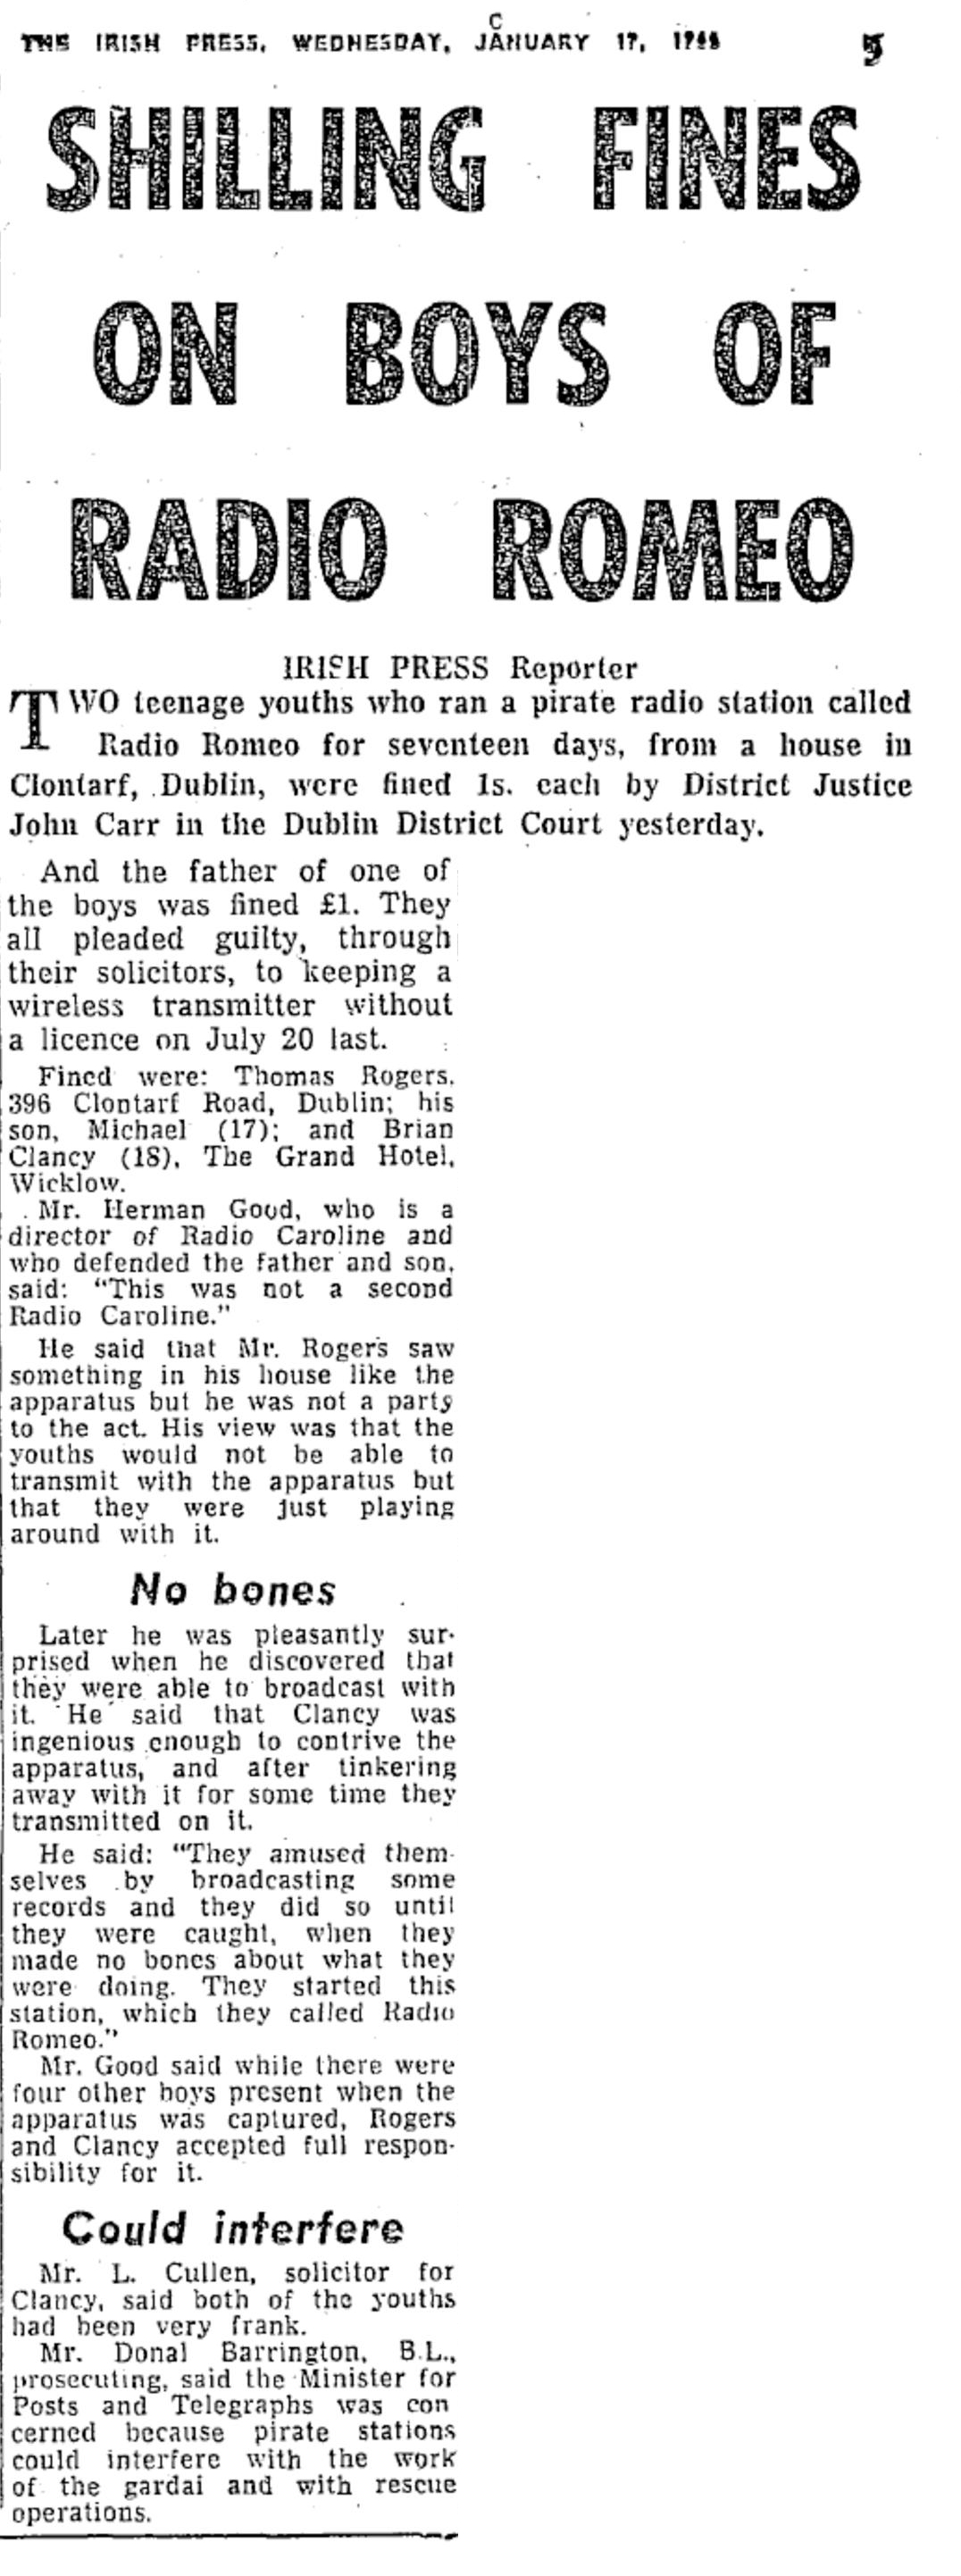 Shilling fines on boys of Radio Romeo was a headline from The Irish Press from January 19th 1966.